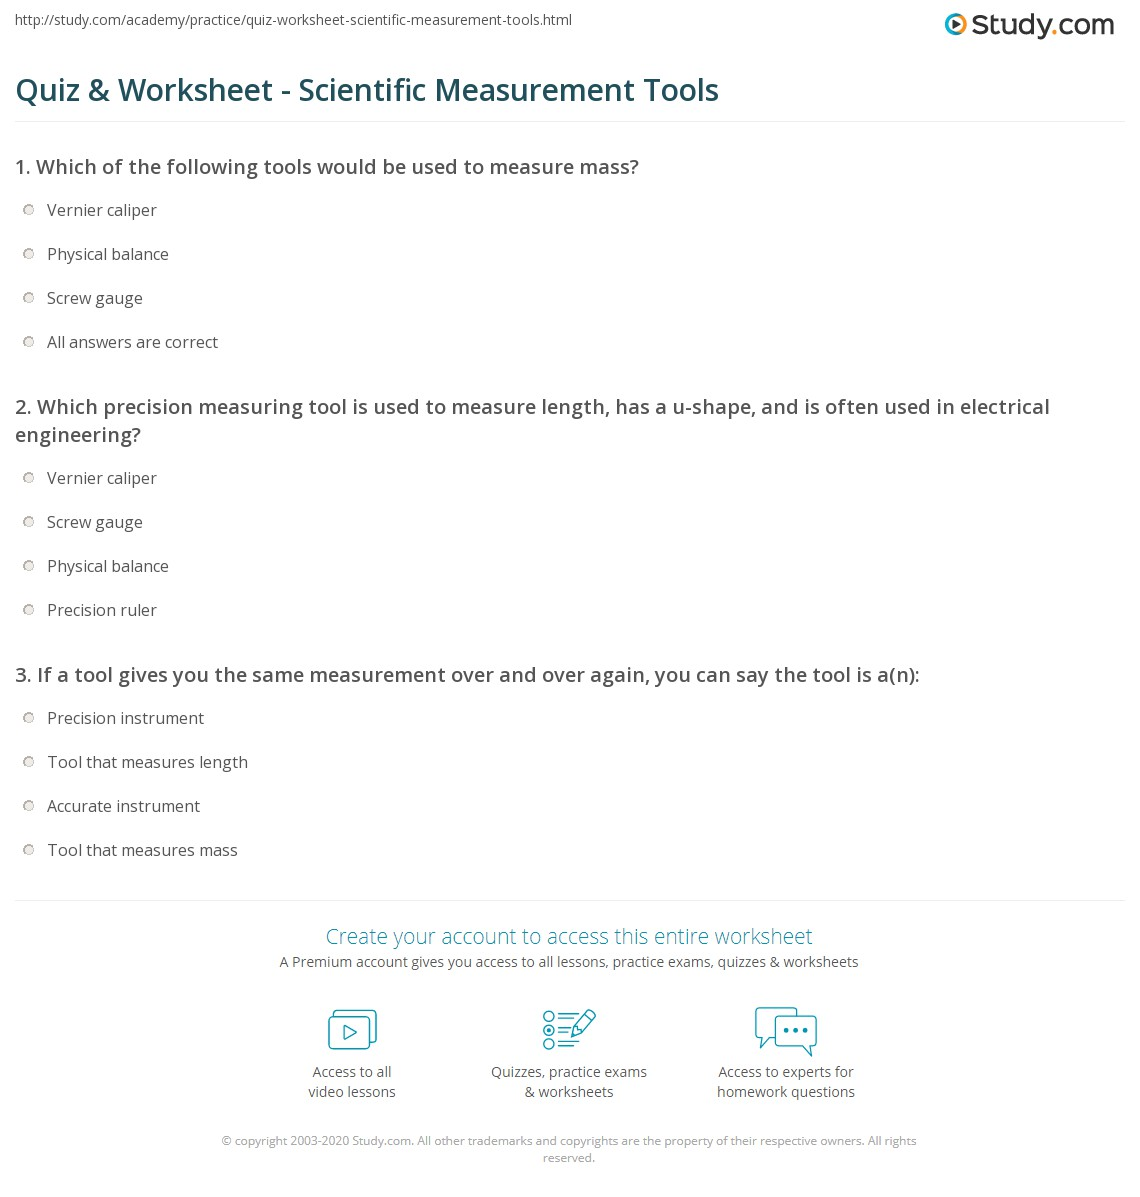 quiz worksheet scientific measurement tools. Black Bedroom Furniture Sets. Home Design Ideas